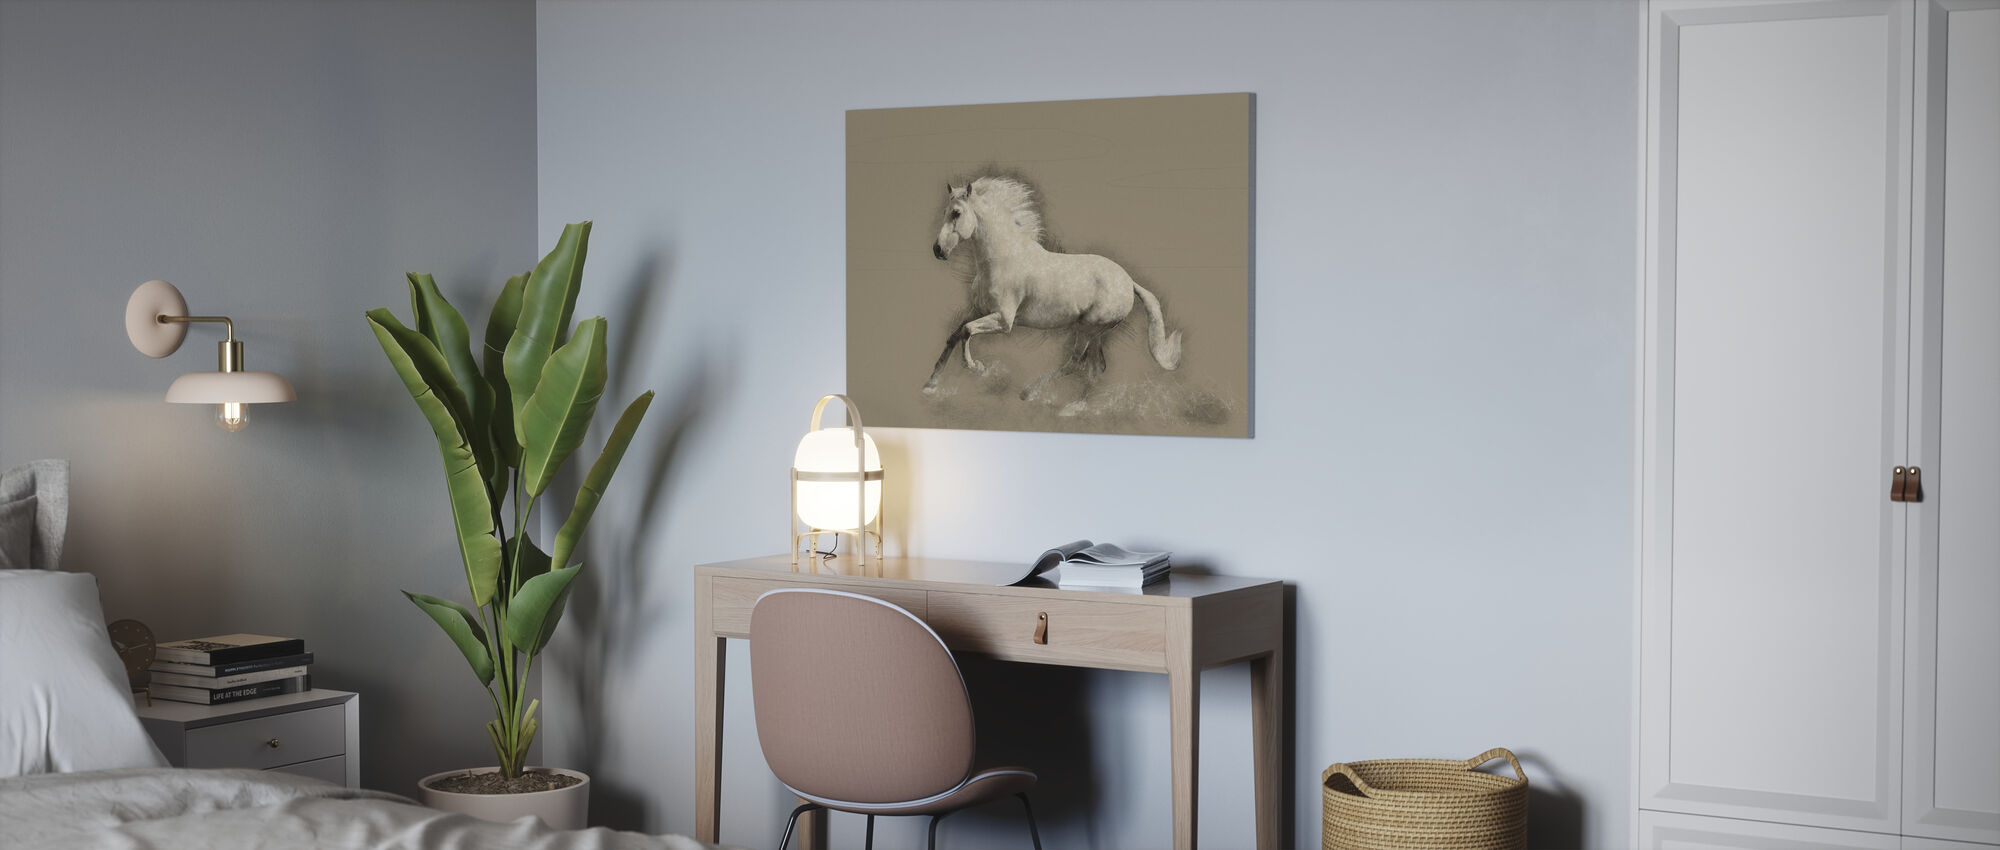 Horse Drawing - Canvas print - Office